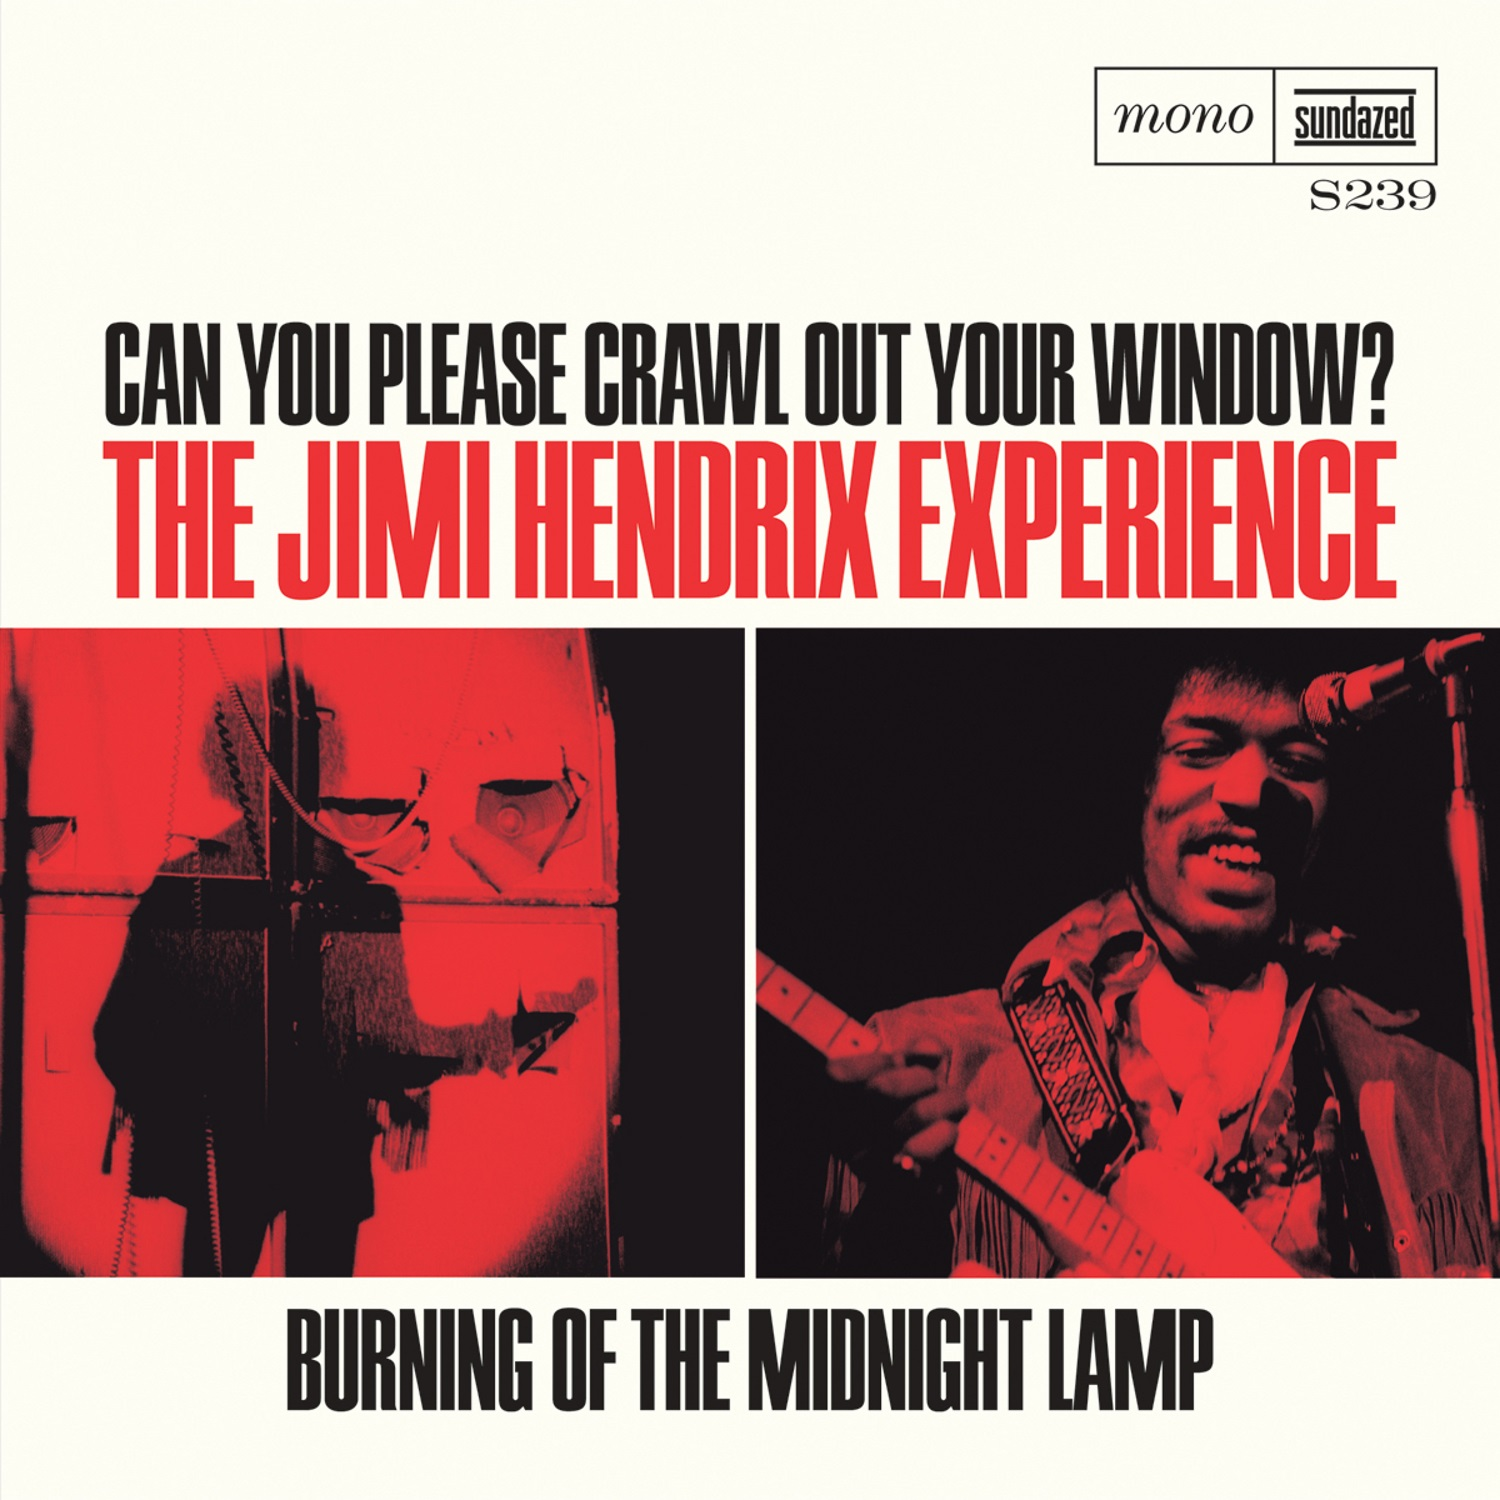 "Hendrix, Jimi - Can You Please Crawl Out Your Window? / Burning of the Midnight Lamp 7"" Single"